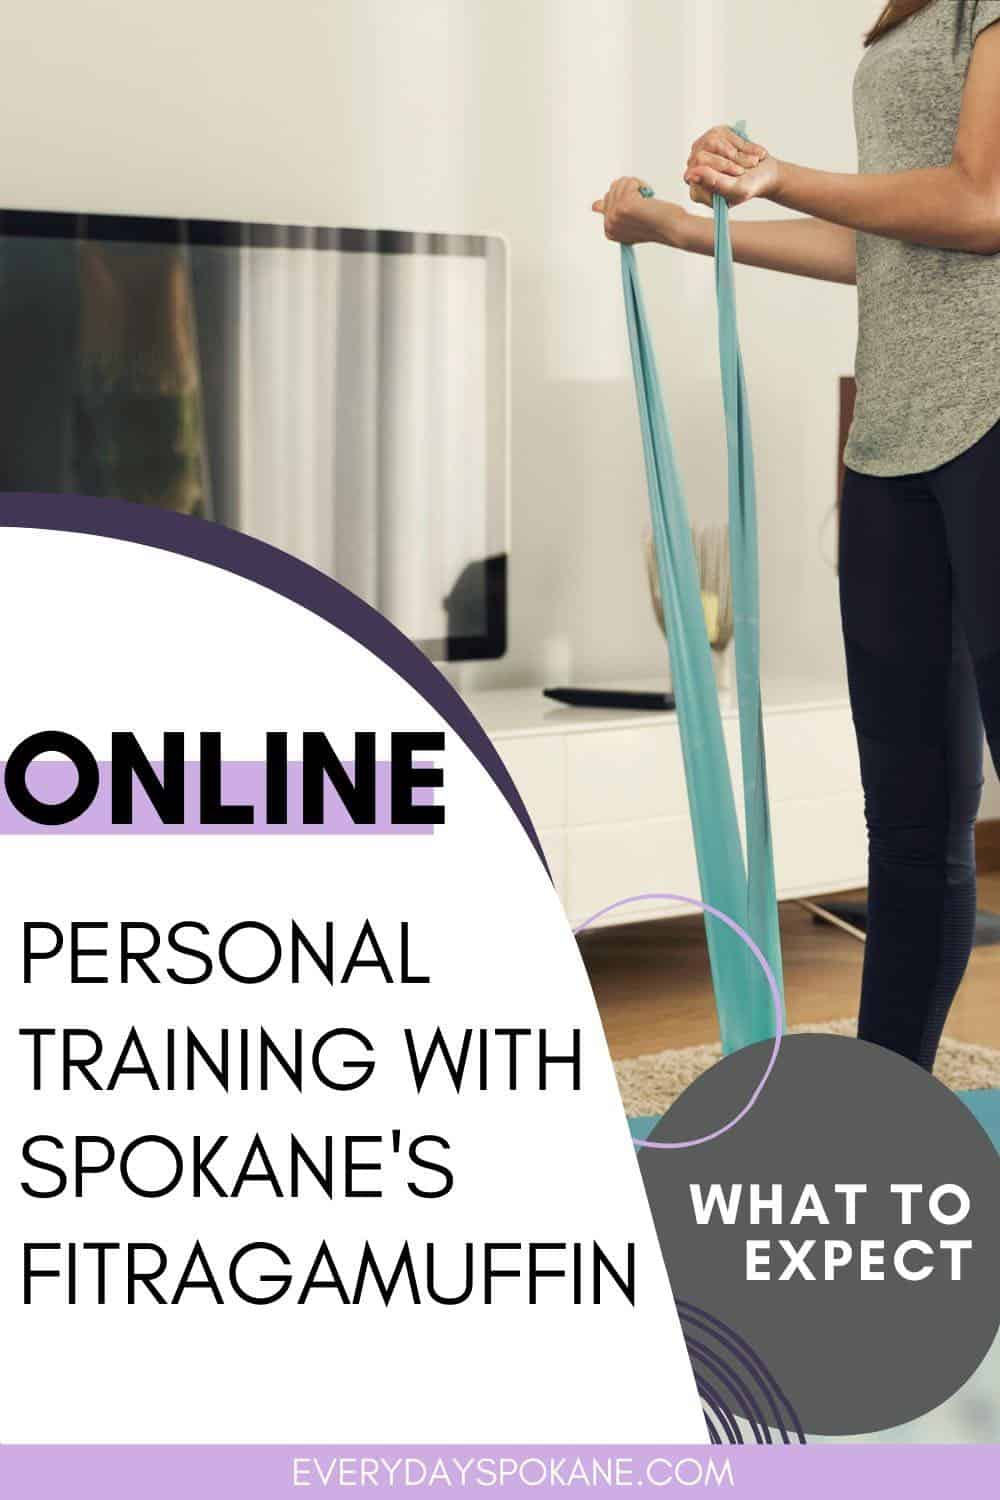 online personal training with fitragamuffin